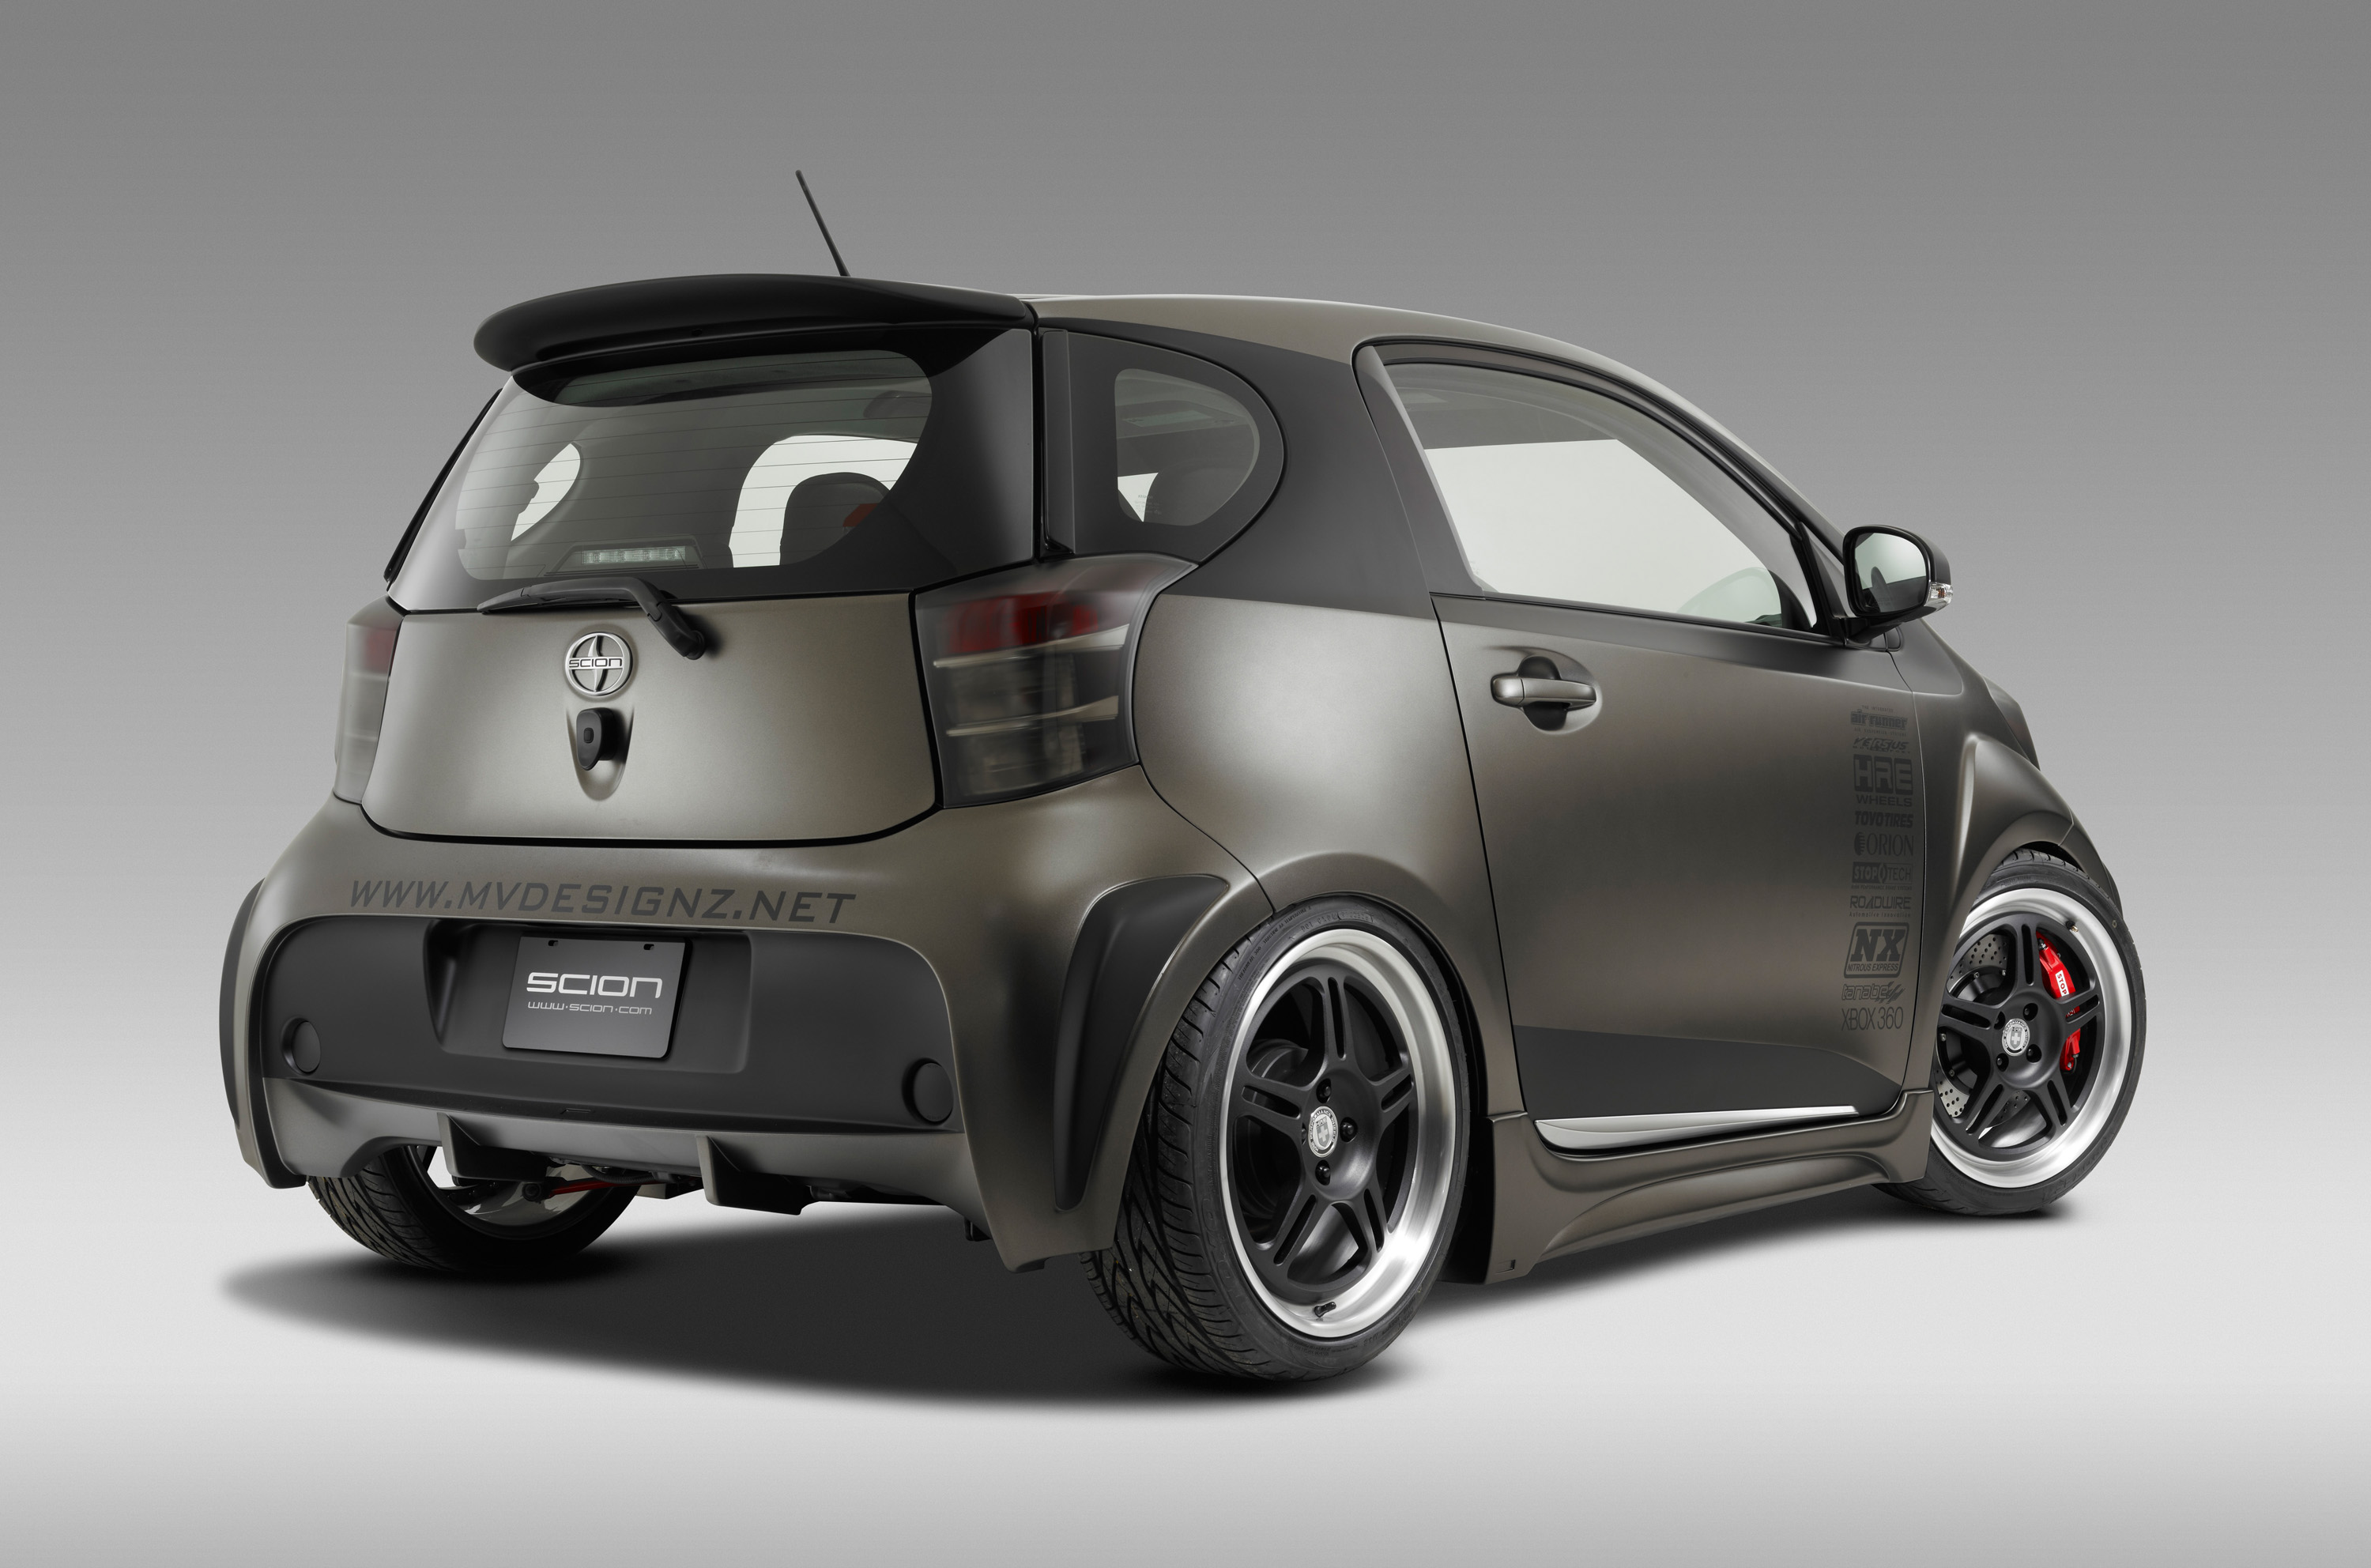 2012 Scion Iq Airrunner System Now On Sale Air Runner